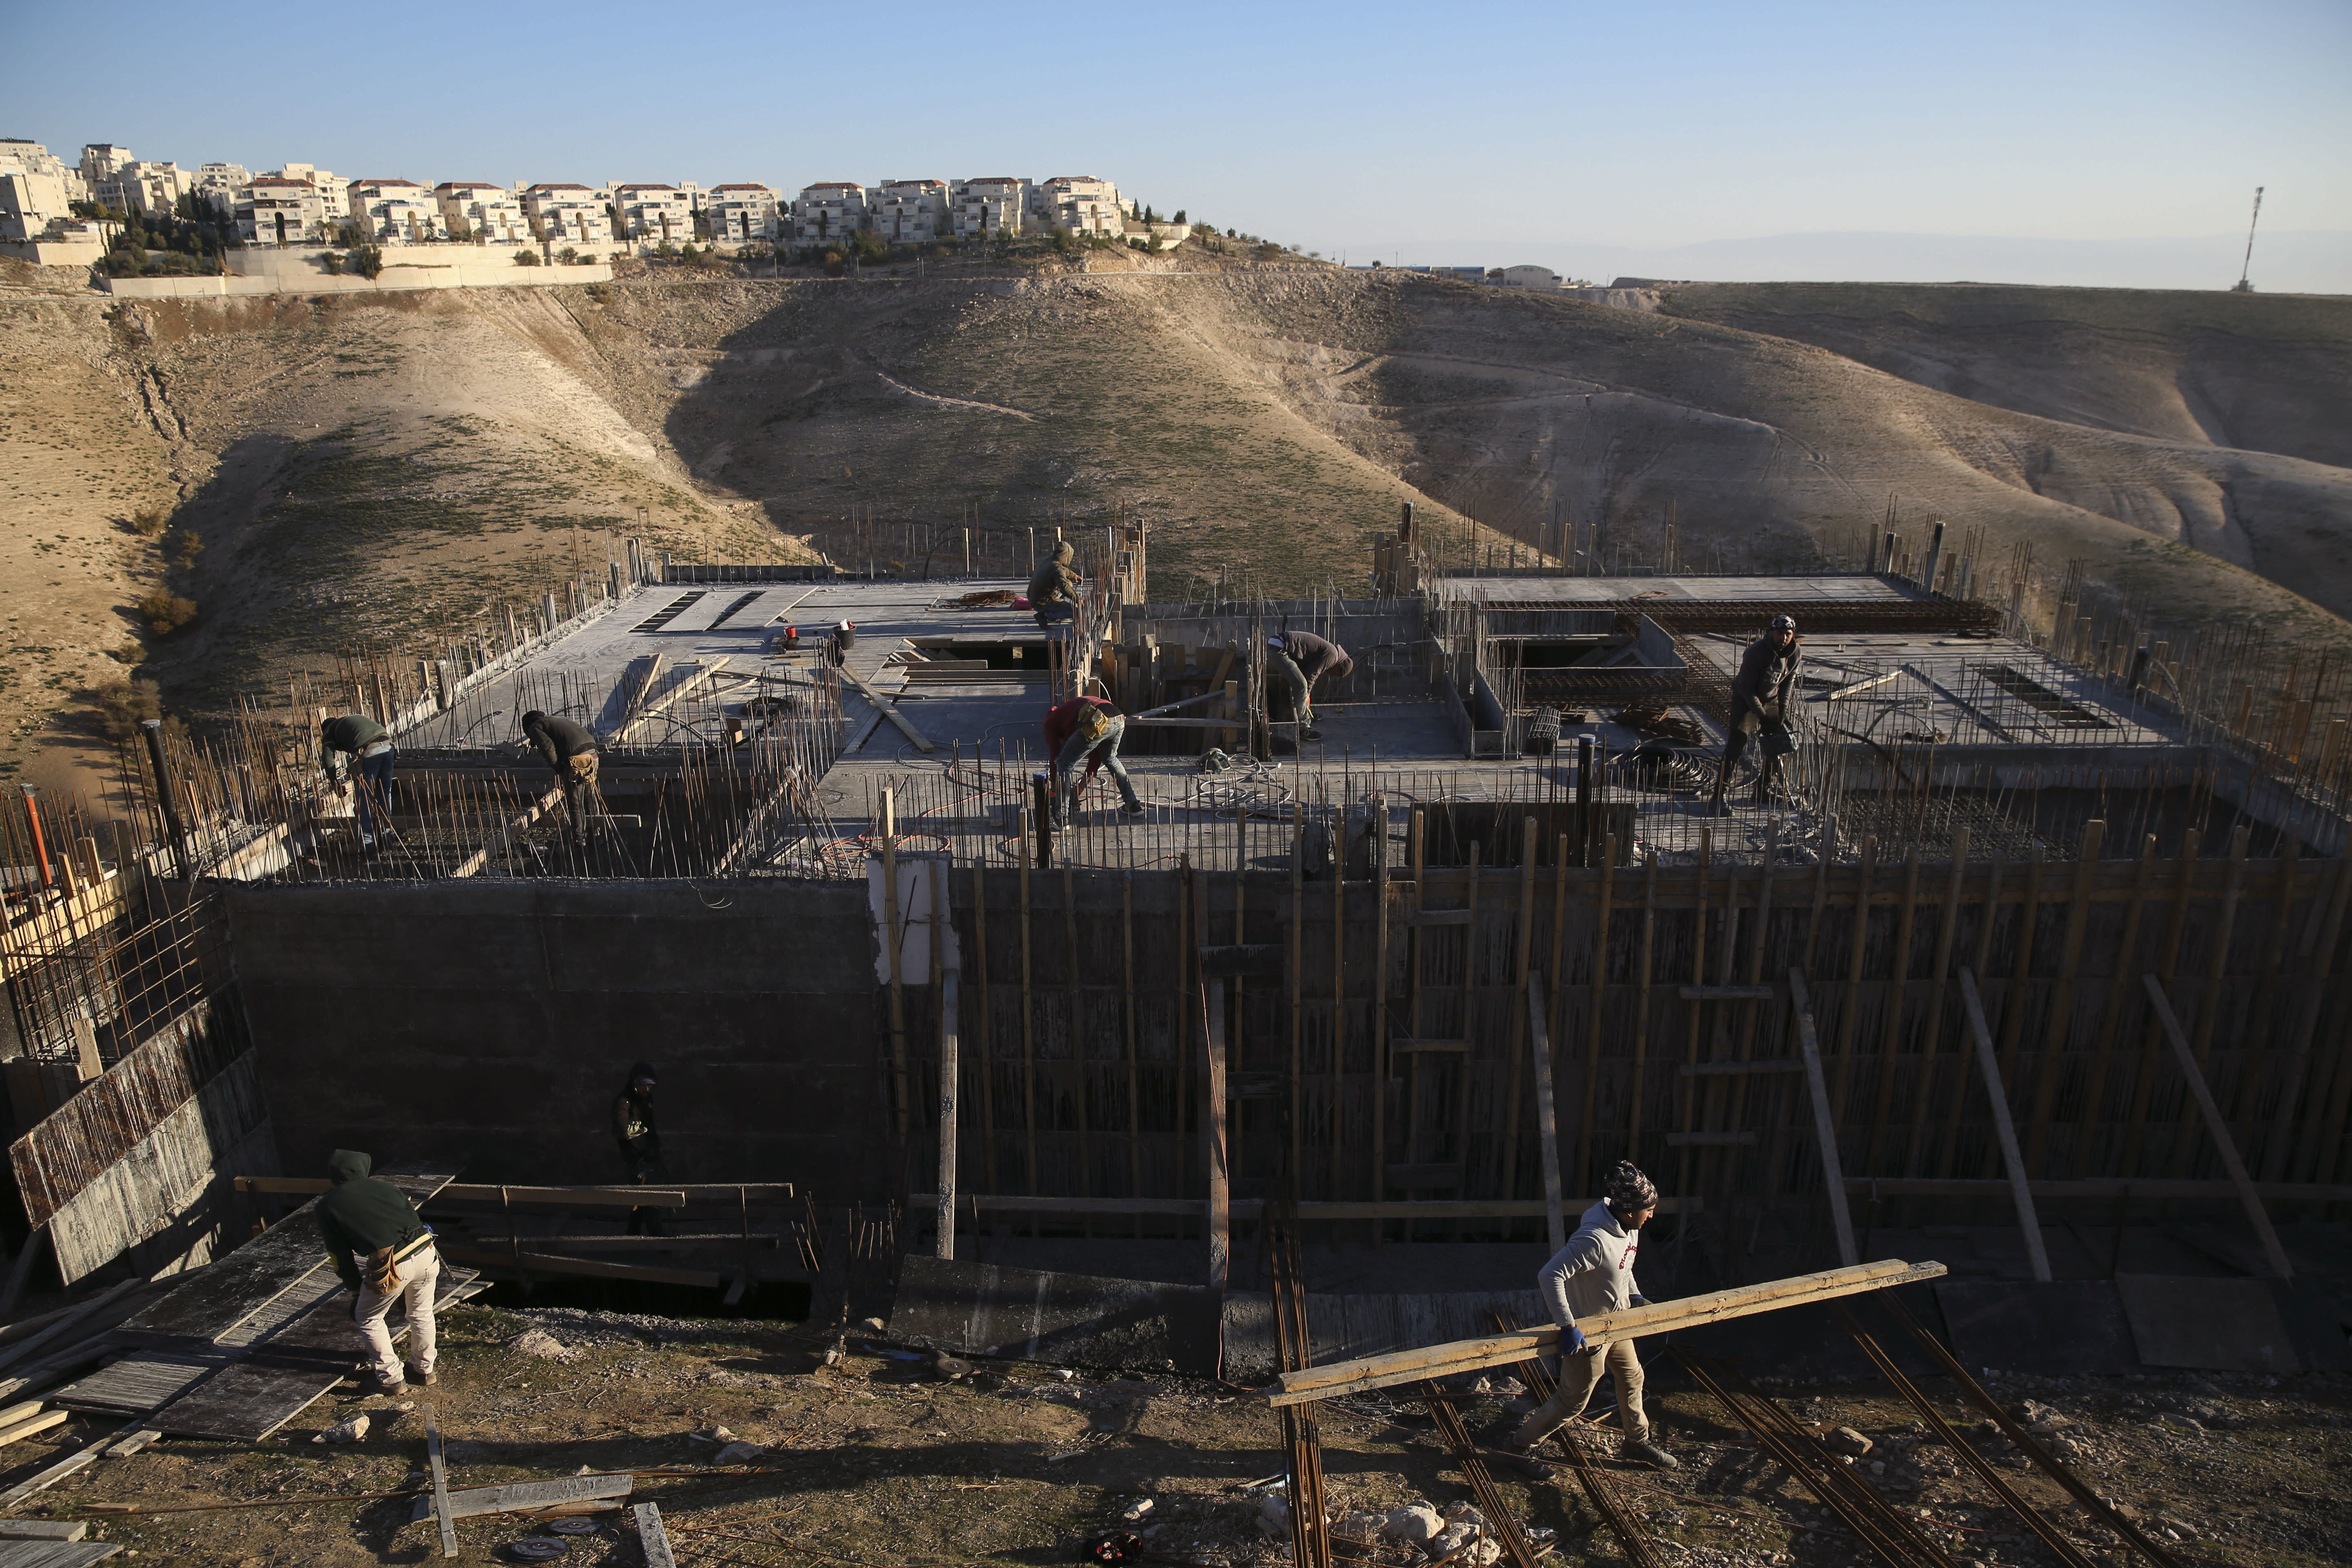 FILE - In this Feb. 7, 2017 file photo, Palestinian laborers work at a construction site in the Israeli settlement of Maale Adumim, near Jerusalem. Israeli authorities have advanced plans to build over 2,100 new settlement homes in the occupied West Bank. Wednesday's development indicates they are pressing ahead with a building boom that has gained steam during the presidency of Donald Trump. (AP Photo/Oded Balilty, File)